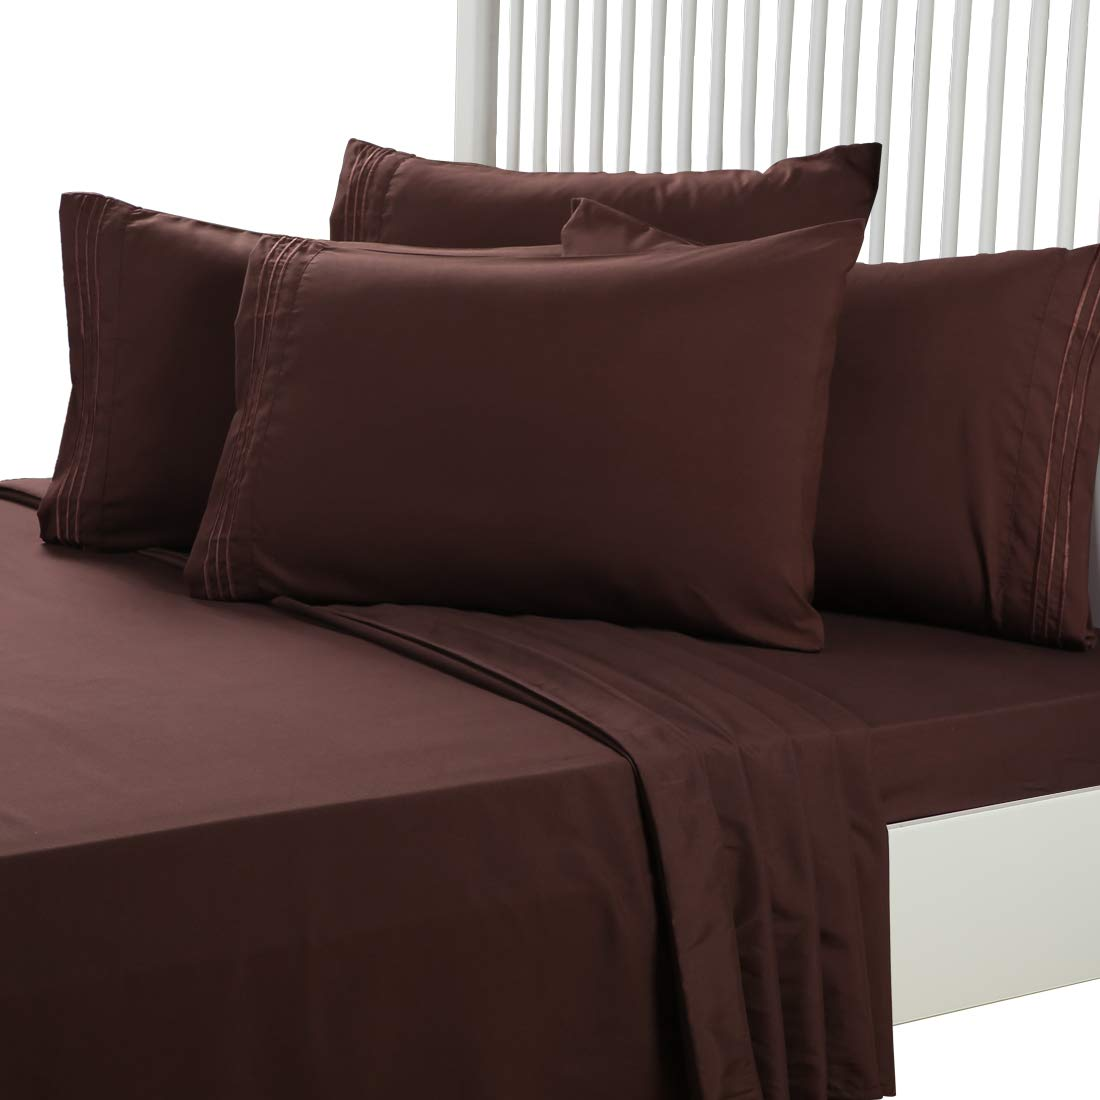 EASELAND 4-Pieces Twin Size Bed Sheets Set 1800 Series Microfiber-Wrinkle /& Fade Resistant,Deep Pocket,Hypoallergenic Bedding Set,Twin,Ivory